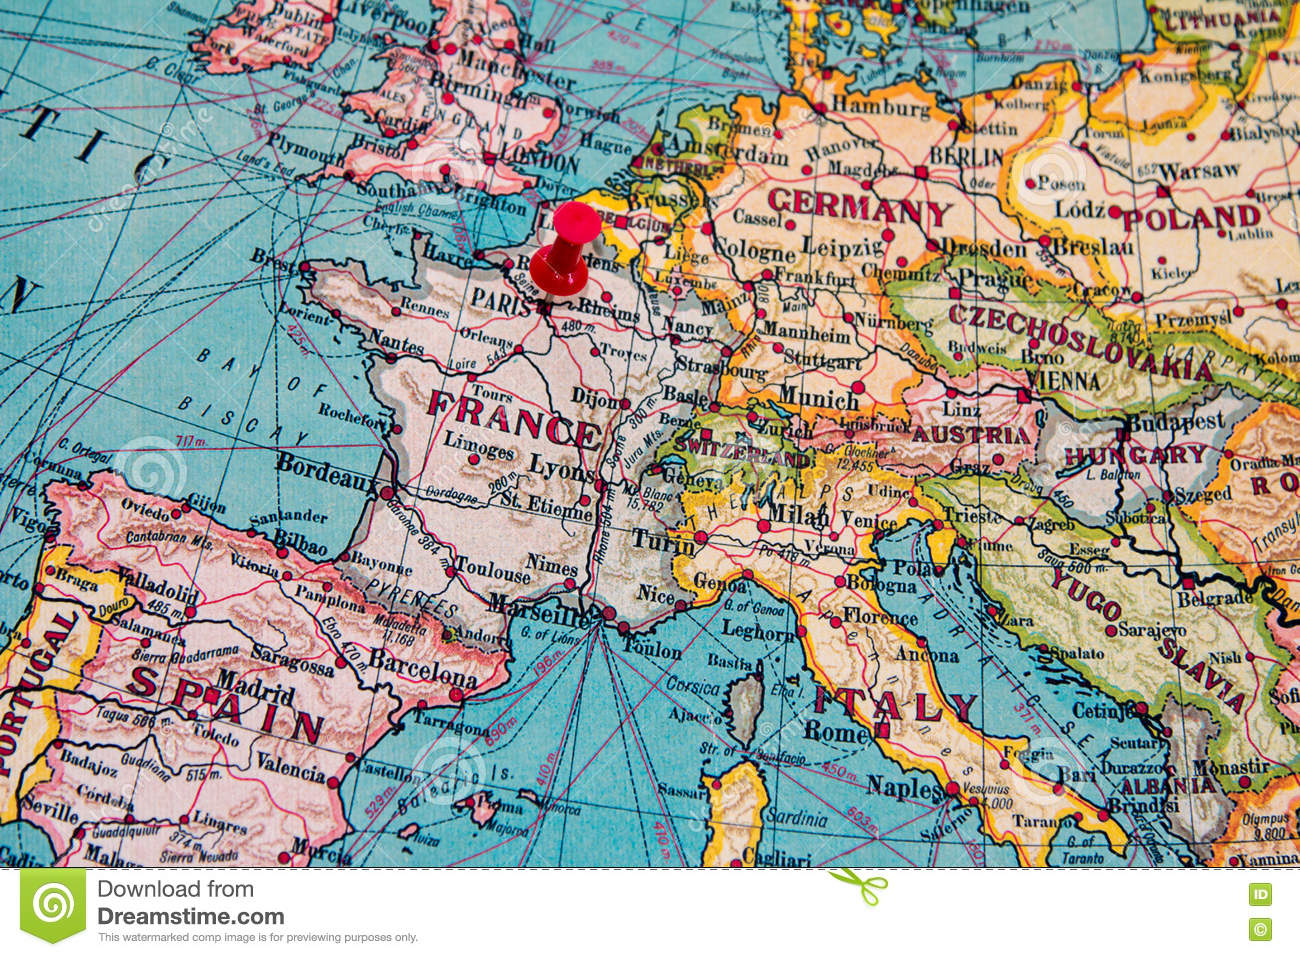 Paris On Map Of Europe.Paris France Pinned On Vintage Map Of Europe Stock Photo Image Of